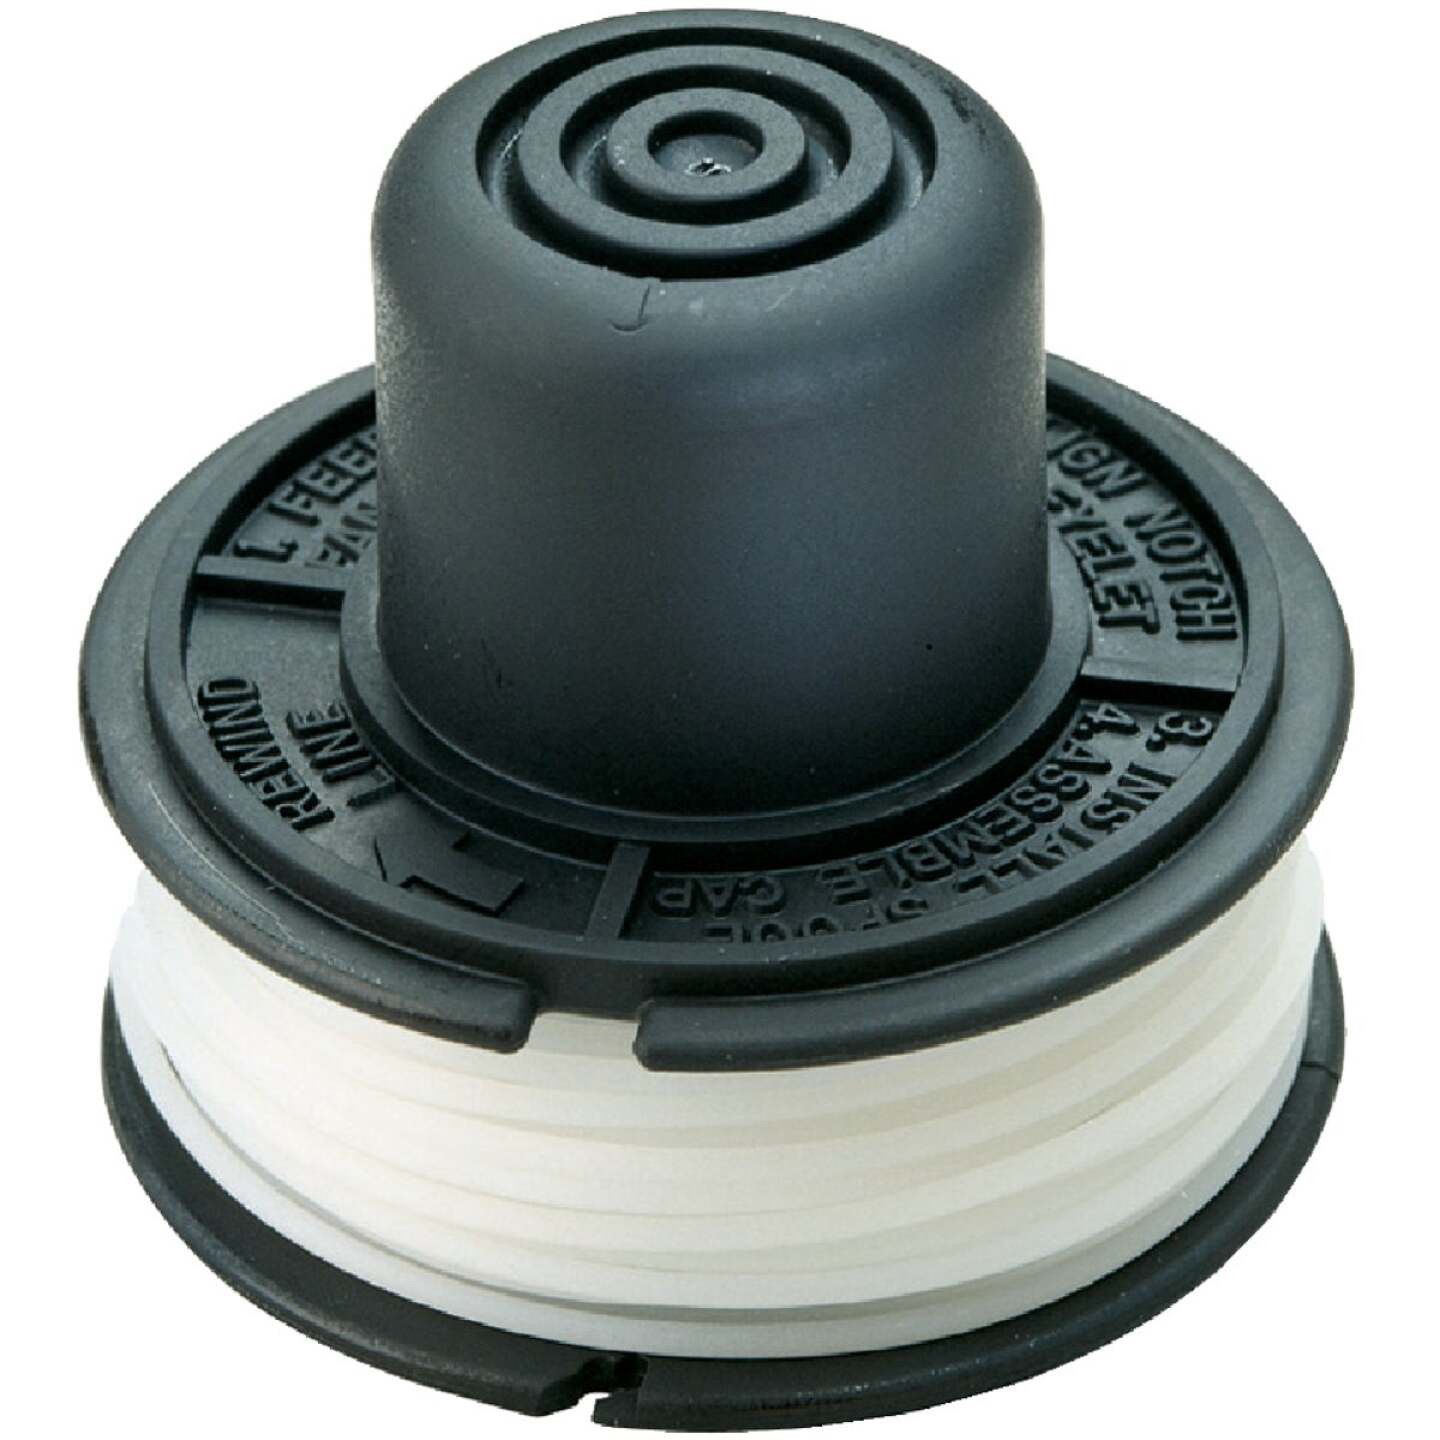 Black & Decker 0.065 In. x 20 Ft. Bump Feed Trimmer Line Spool Image 1